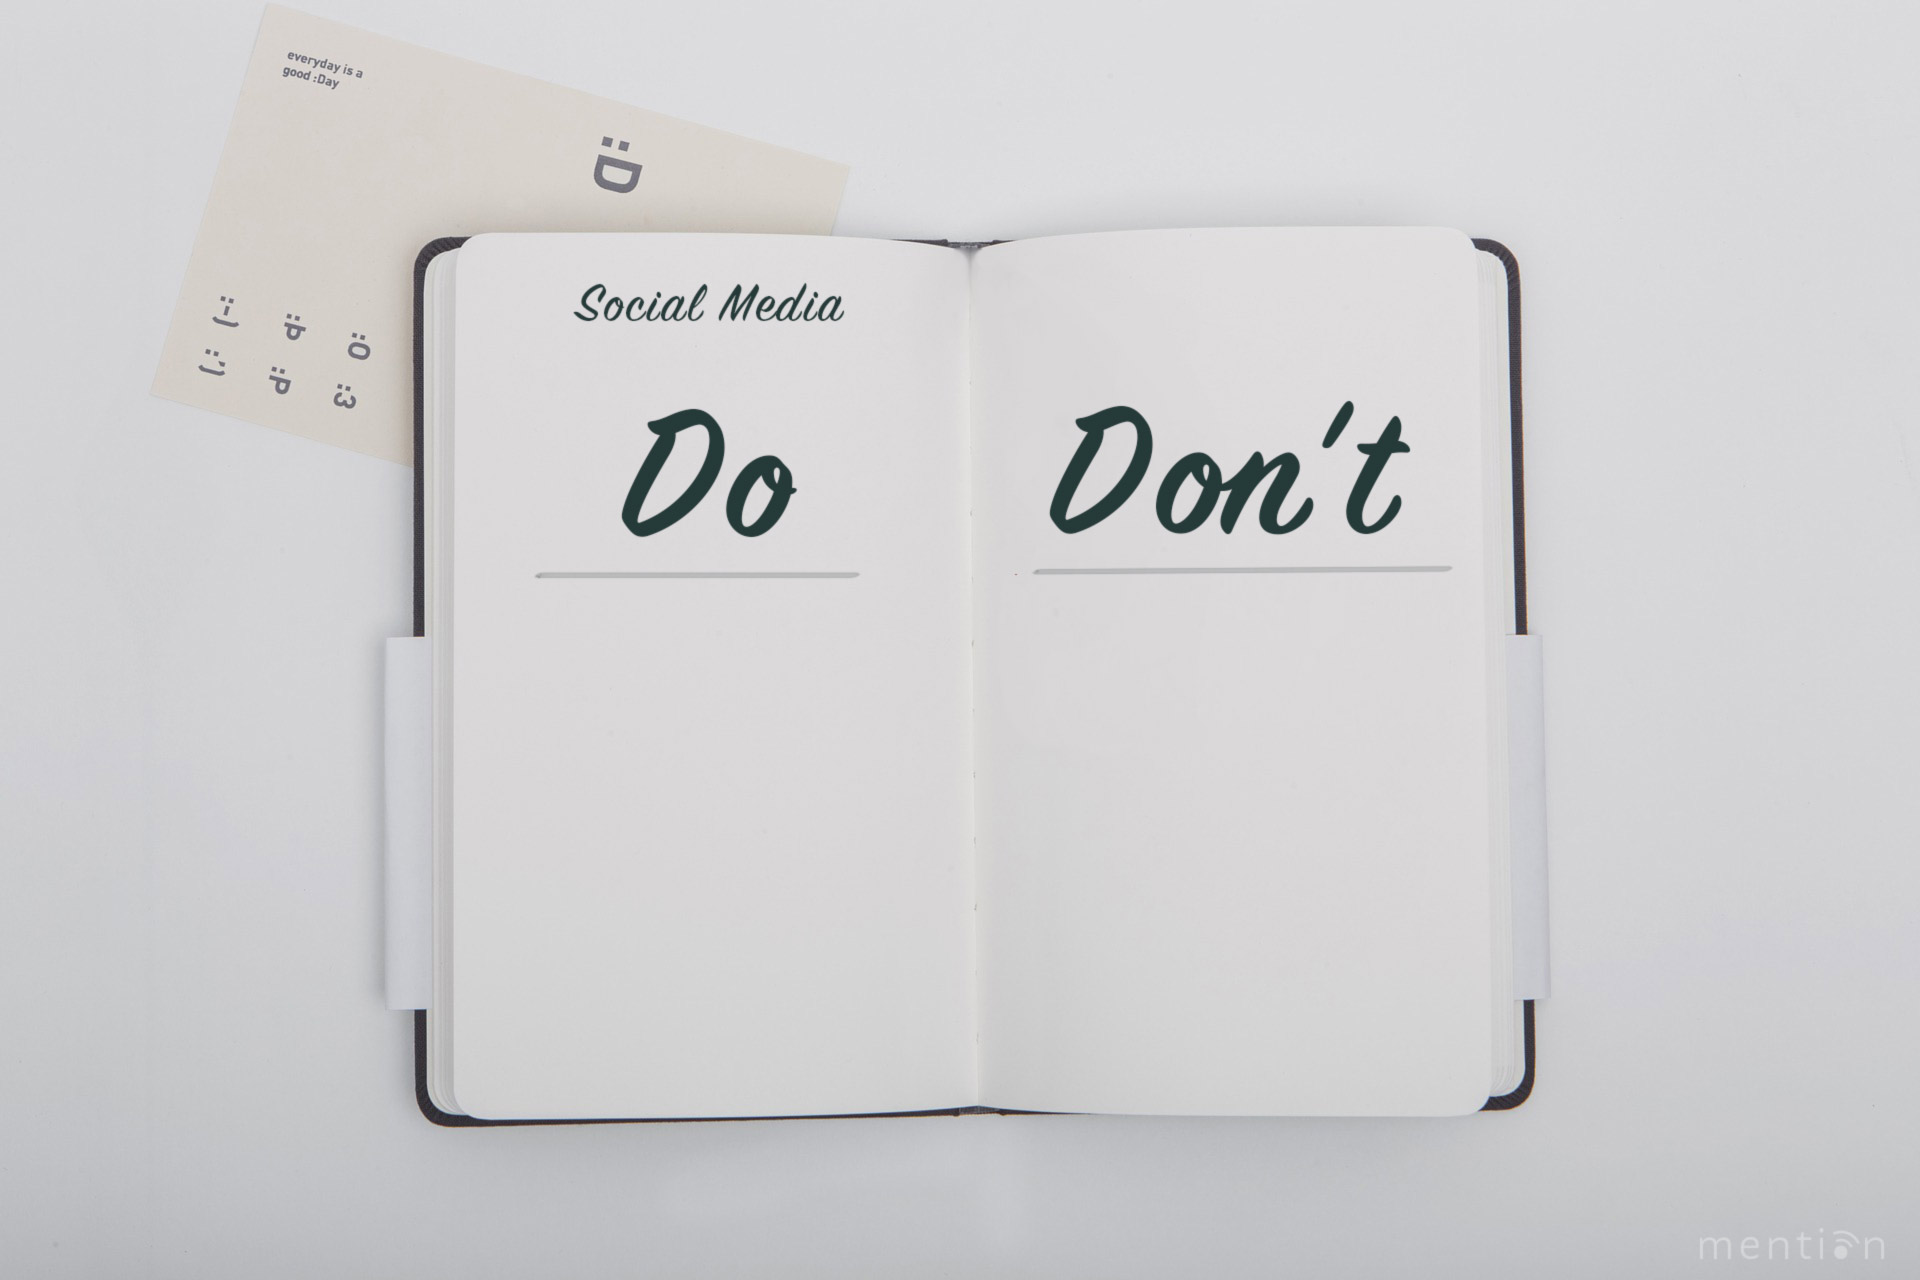 Social Media Ettiquite - Dos and Don'ts